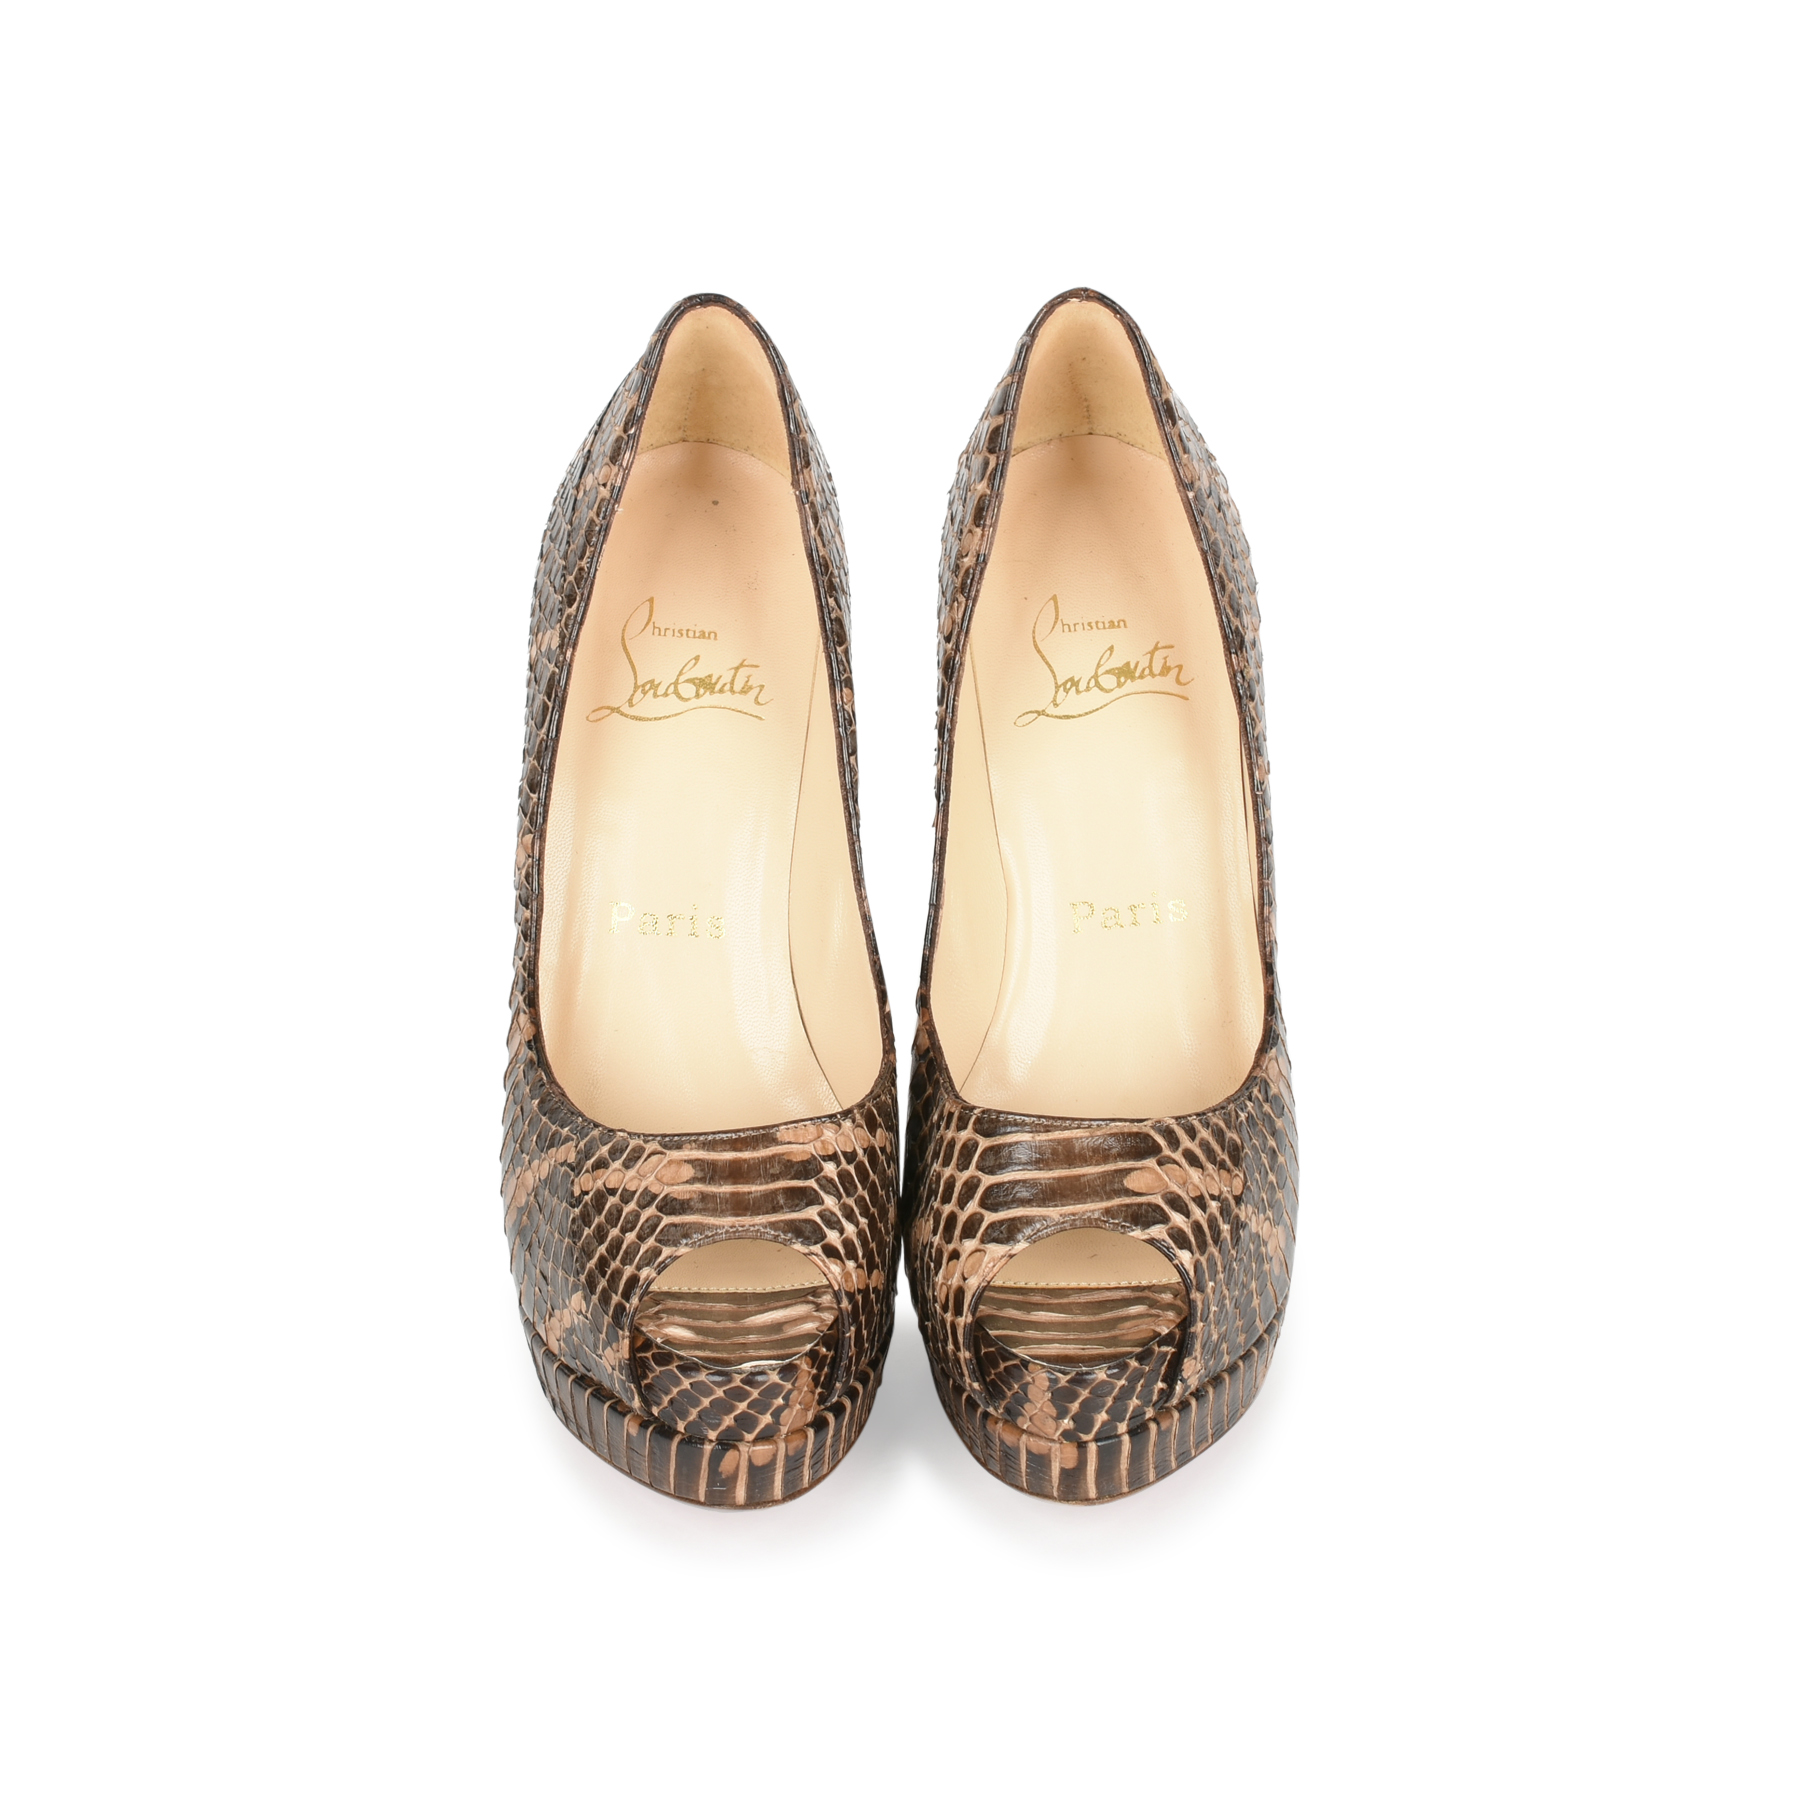 3549015d6a Authentic Second Hand Christian Louboutin Altadama Python Pumps  (PSS-080-00243) | THE FIFTH COLLECTION